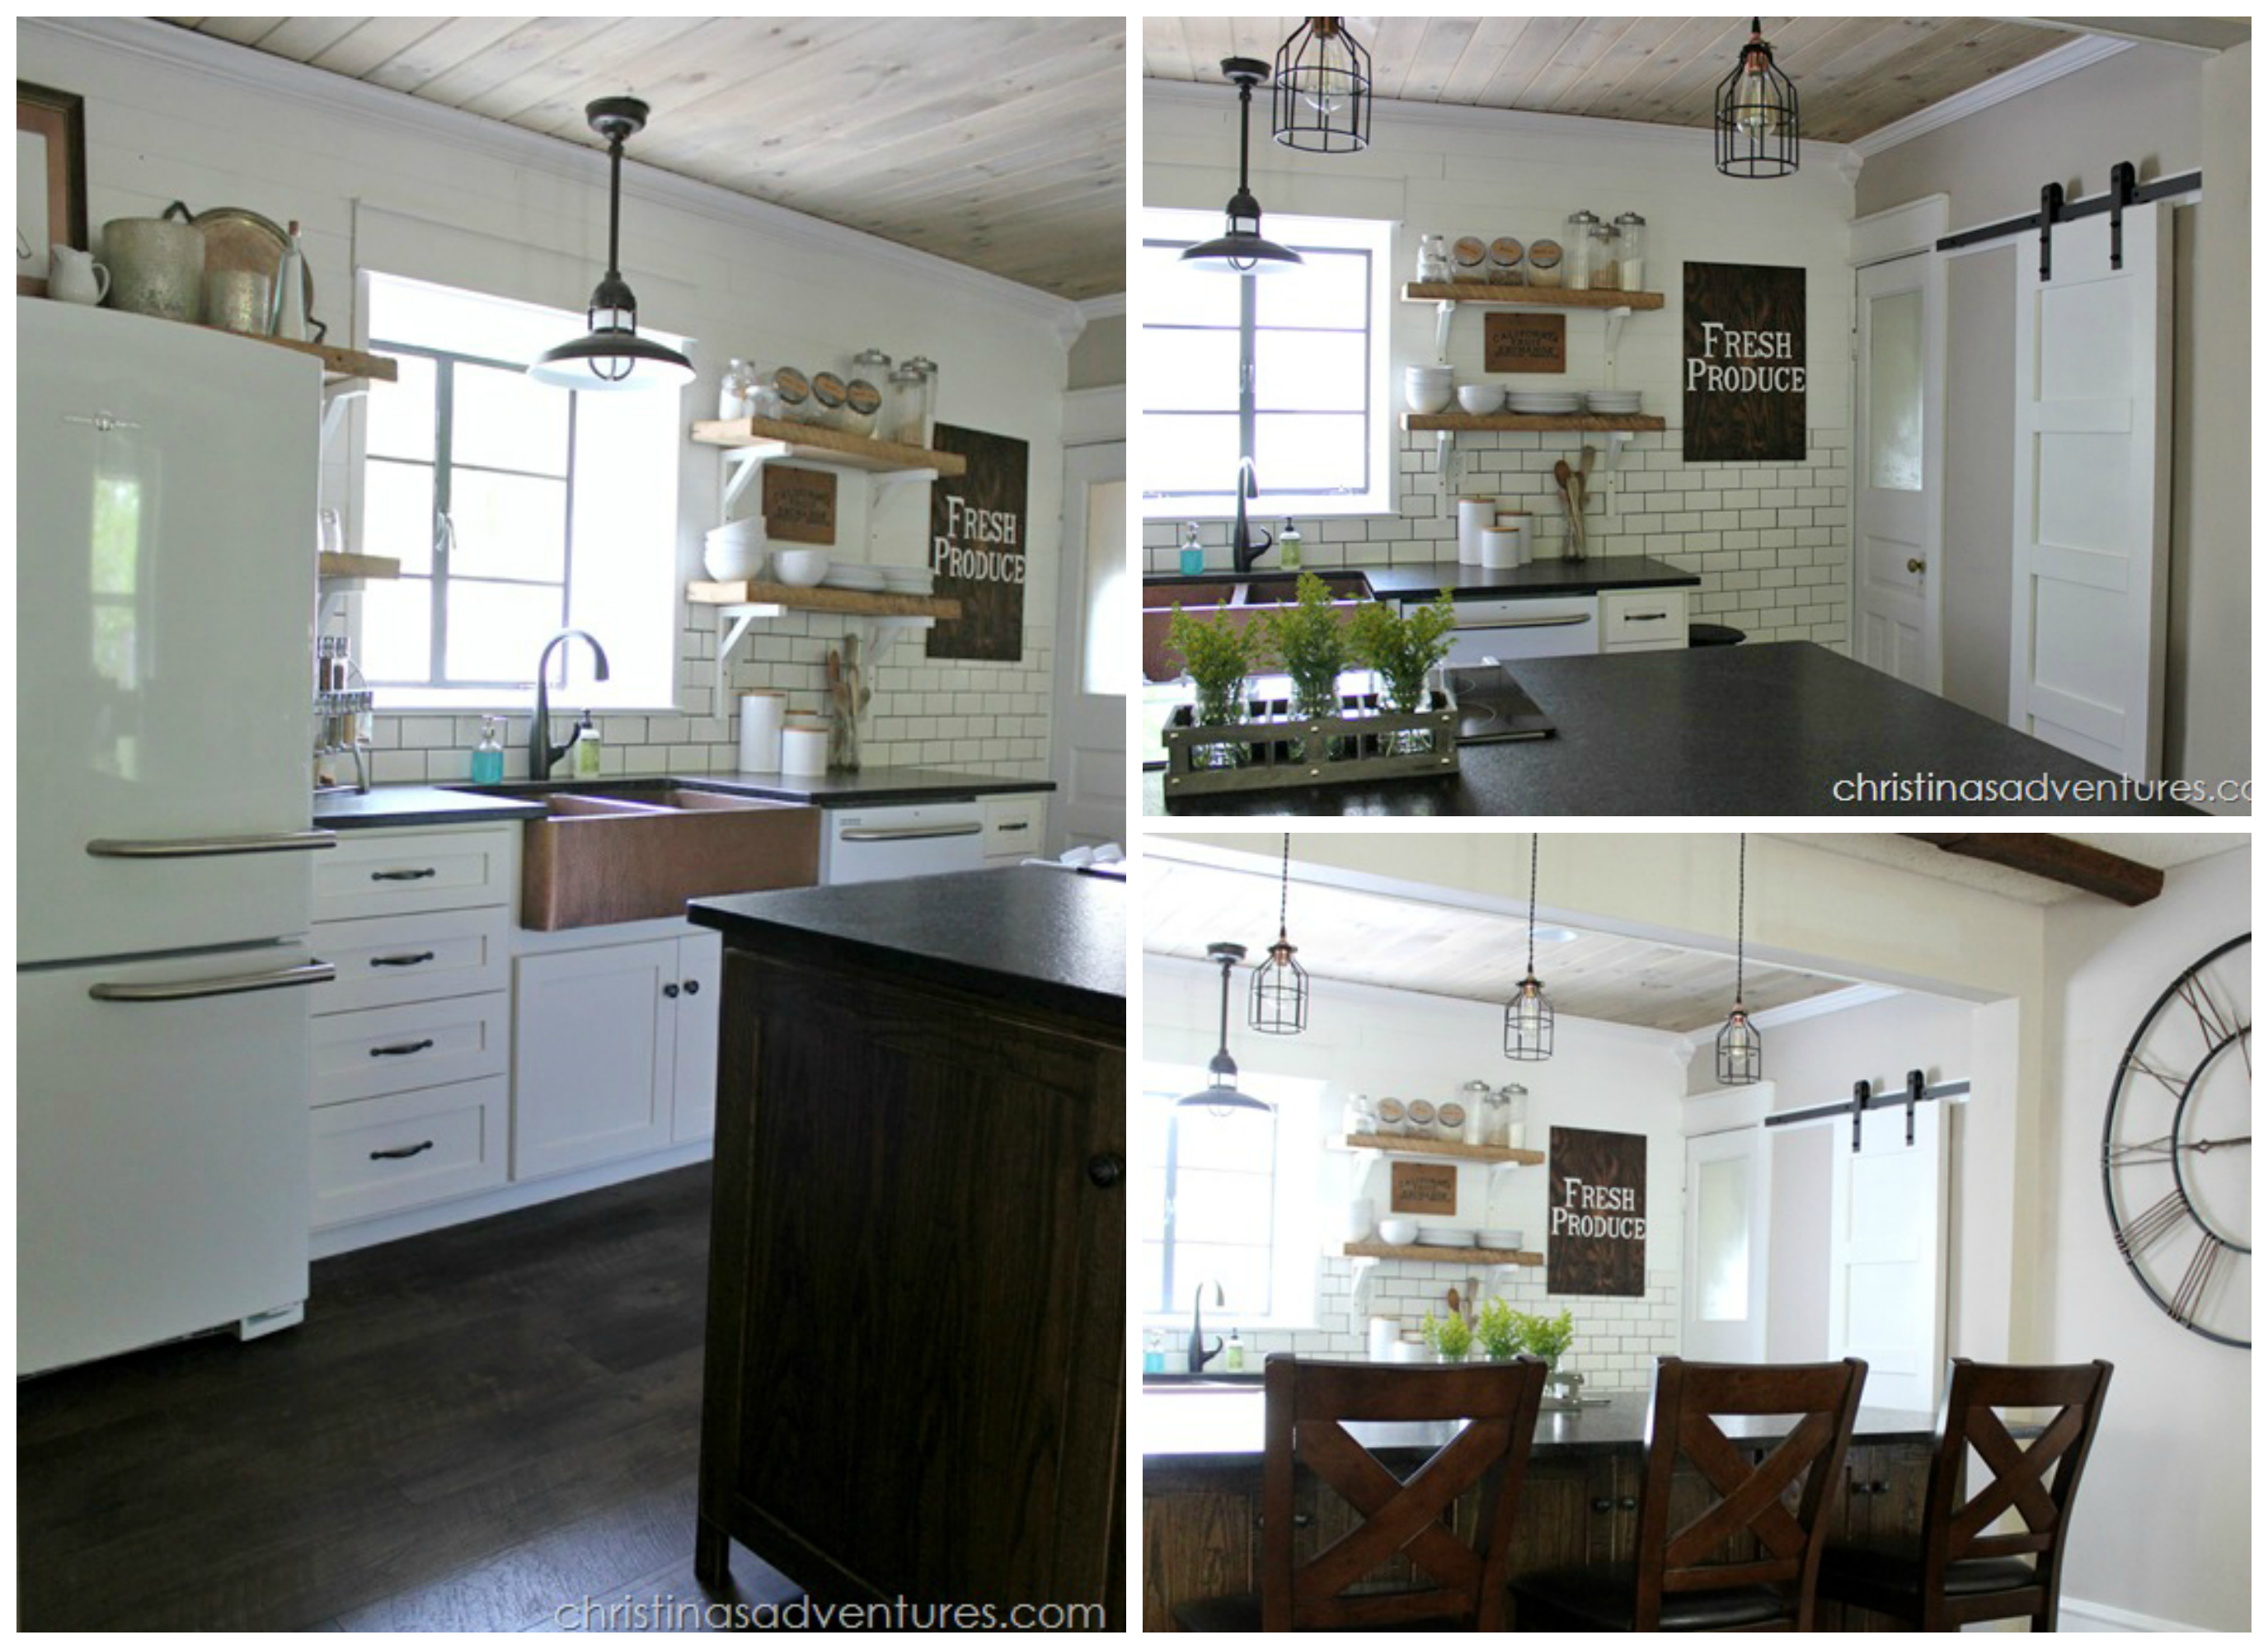 Our favorite fixer upper kitchen makeovers - Fixer Upper Industrial Kitchen Industrial Apartment Fixer Upper Top Projects In The Diy Contest